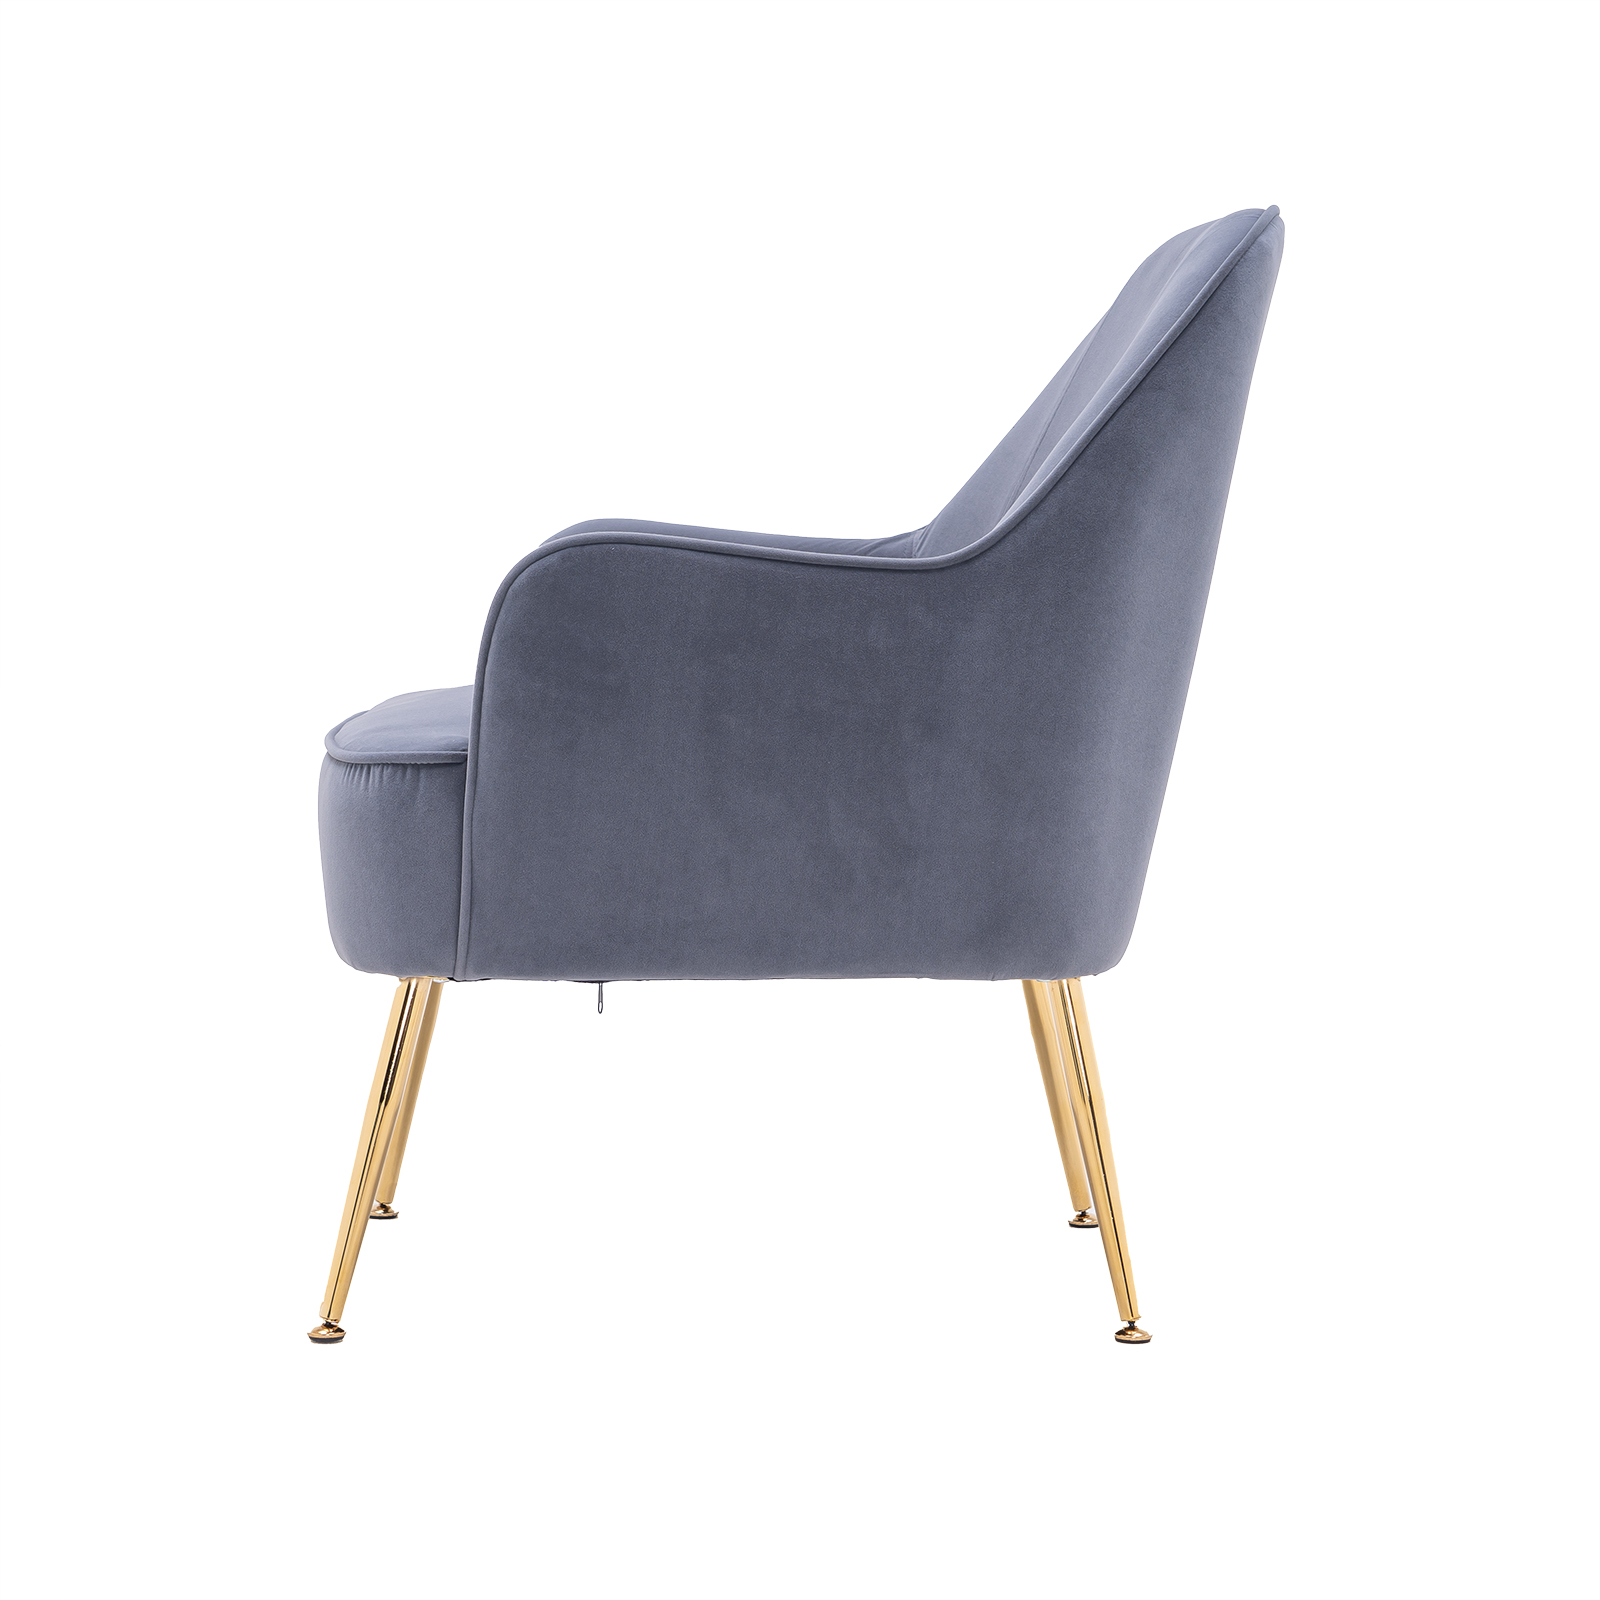 """26\\\\\\\\\\\\\\\\\\\\\\\\\\\\\\\\\\\\\\\\\\\\\\\\\\\\\\\\\\\\\\\"""" Velvet Accent Chair with Gold Metal Legs"""